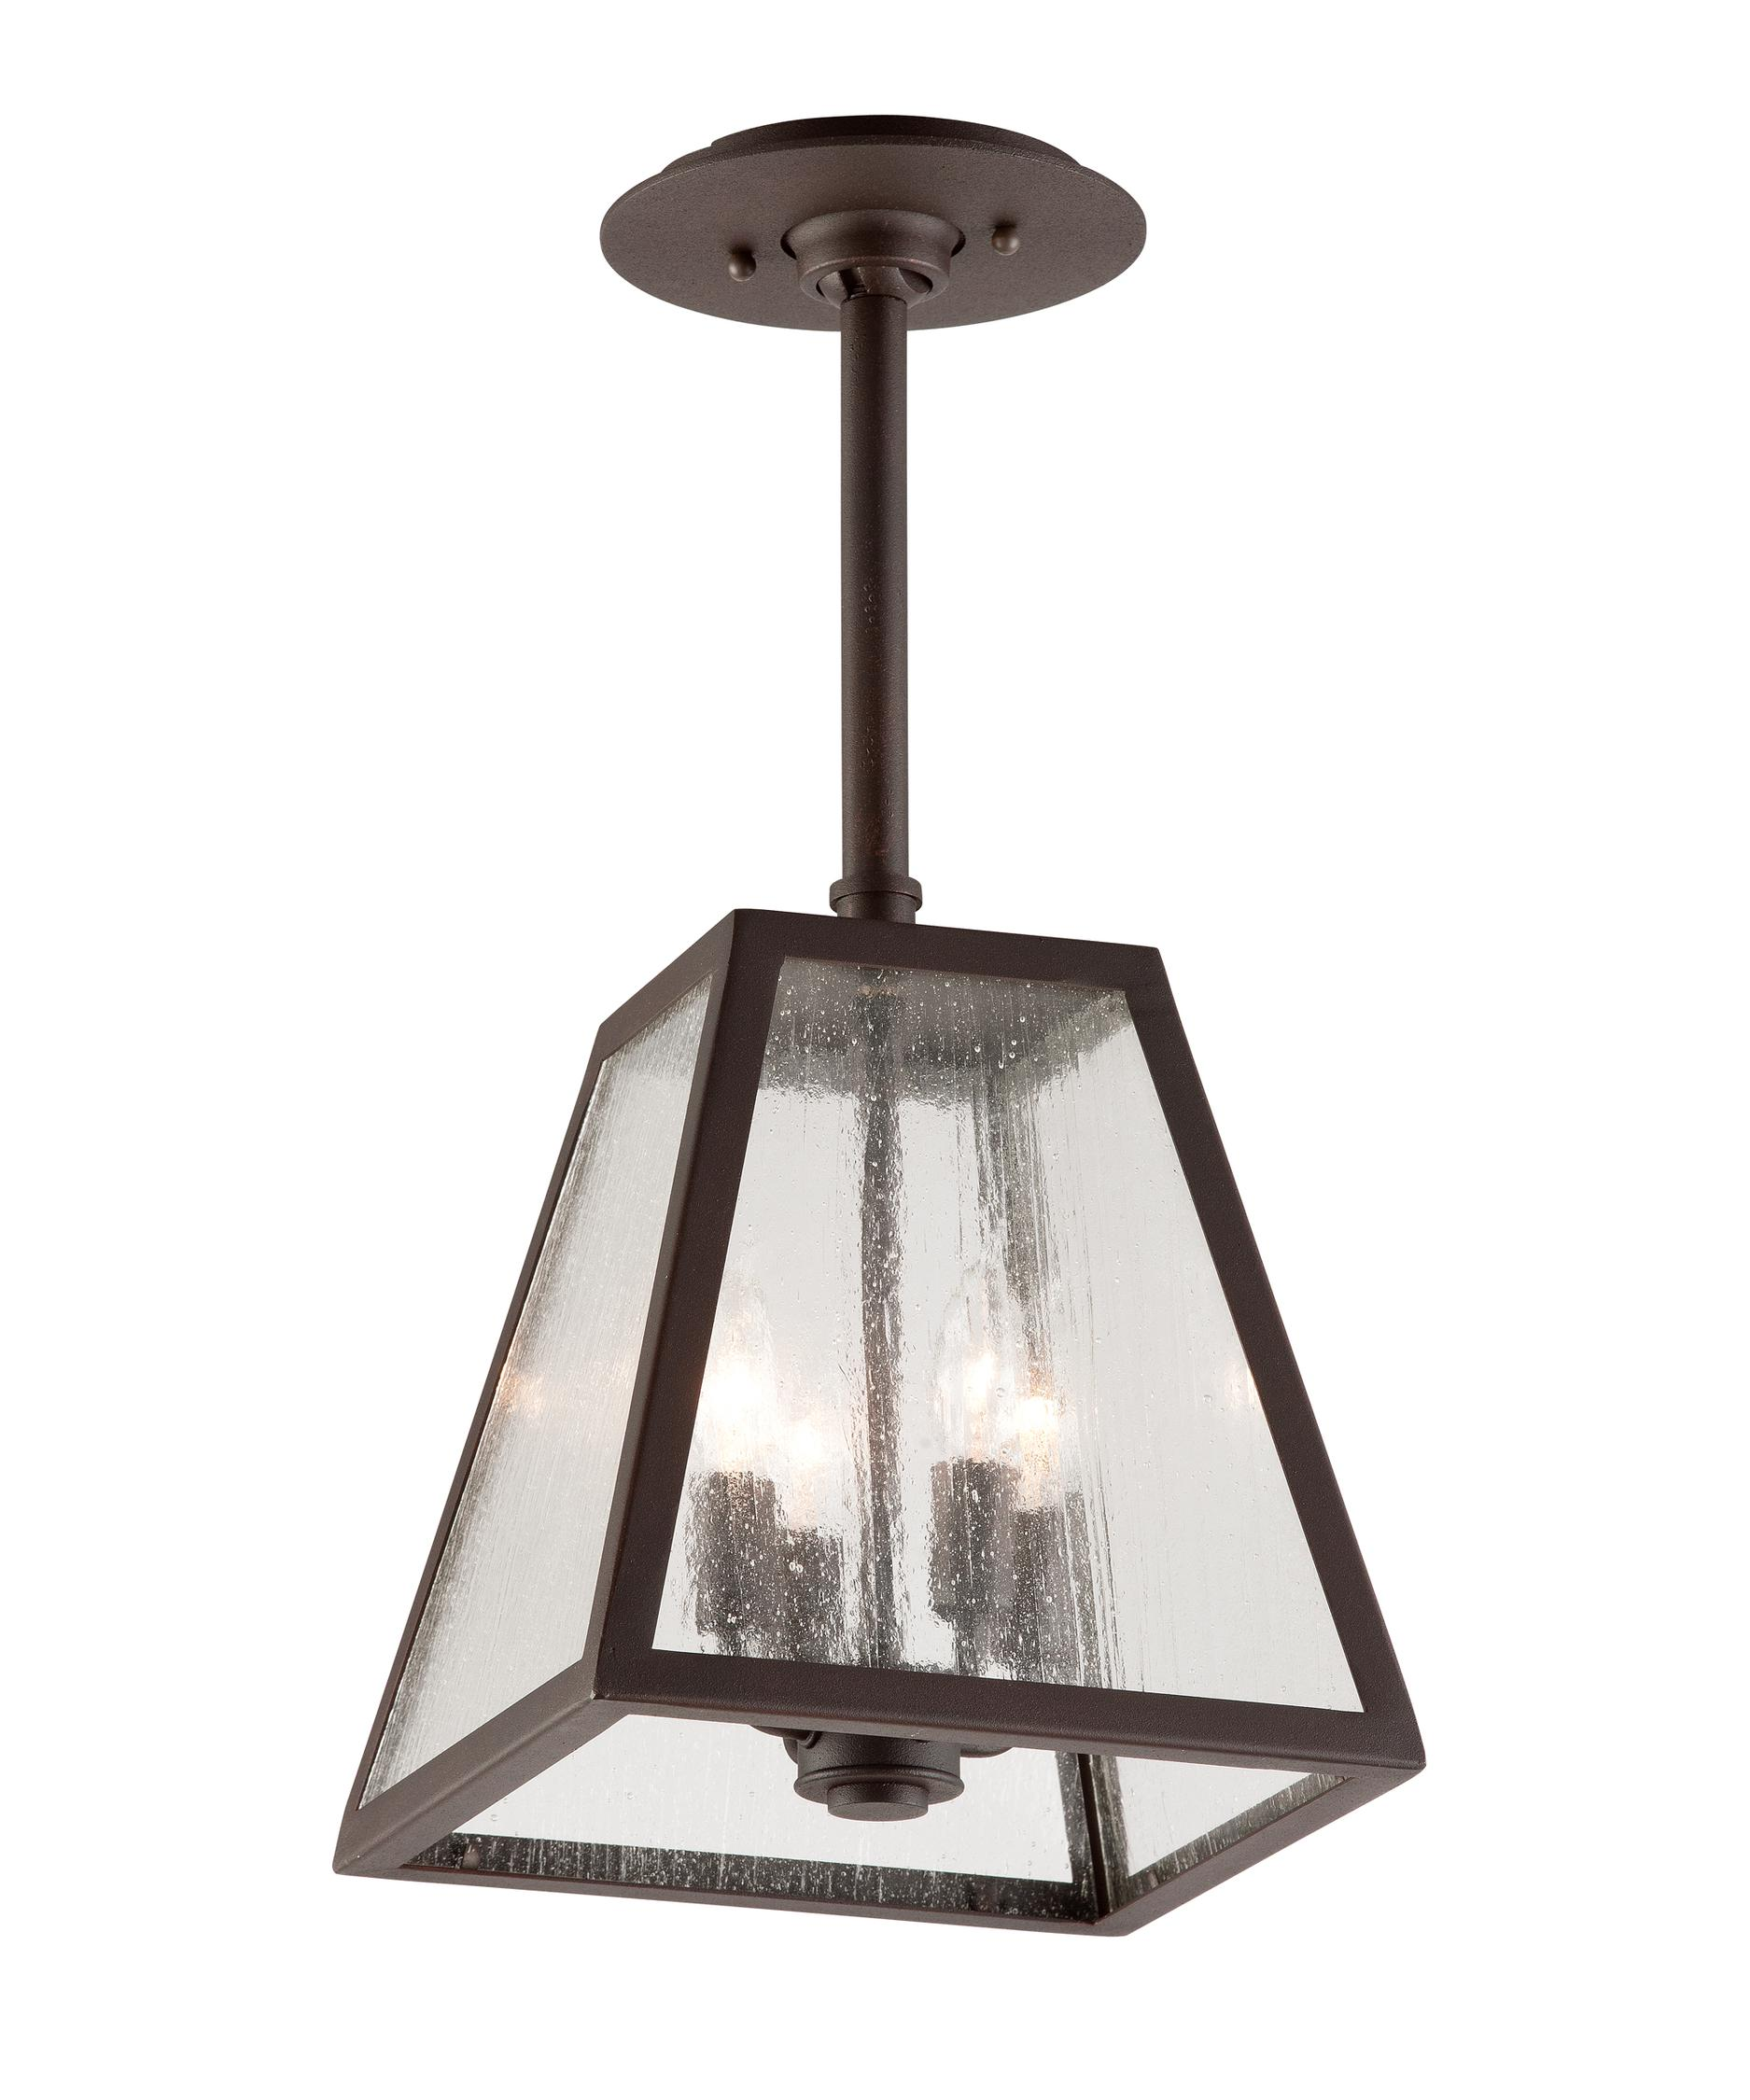 Outdoor hanging lamp - Shown In Coastal River Valley Rust Finish And Clear Seeded Glass